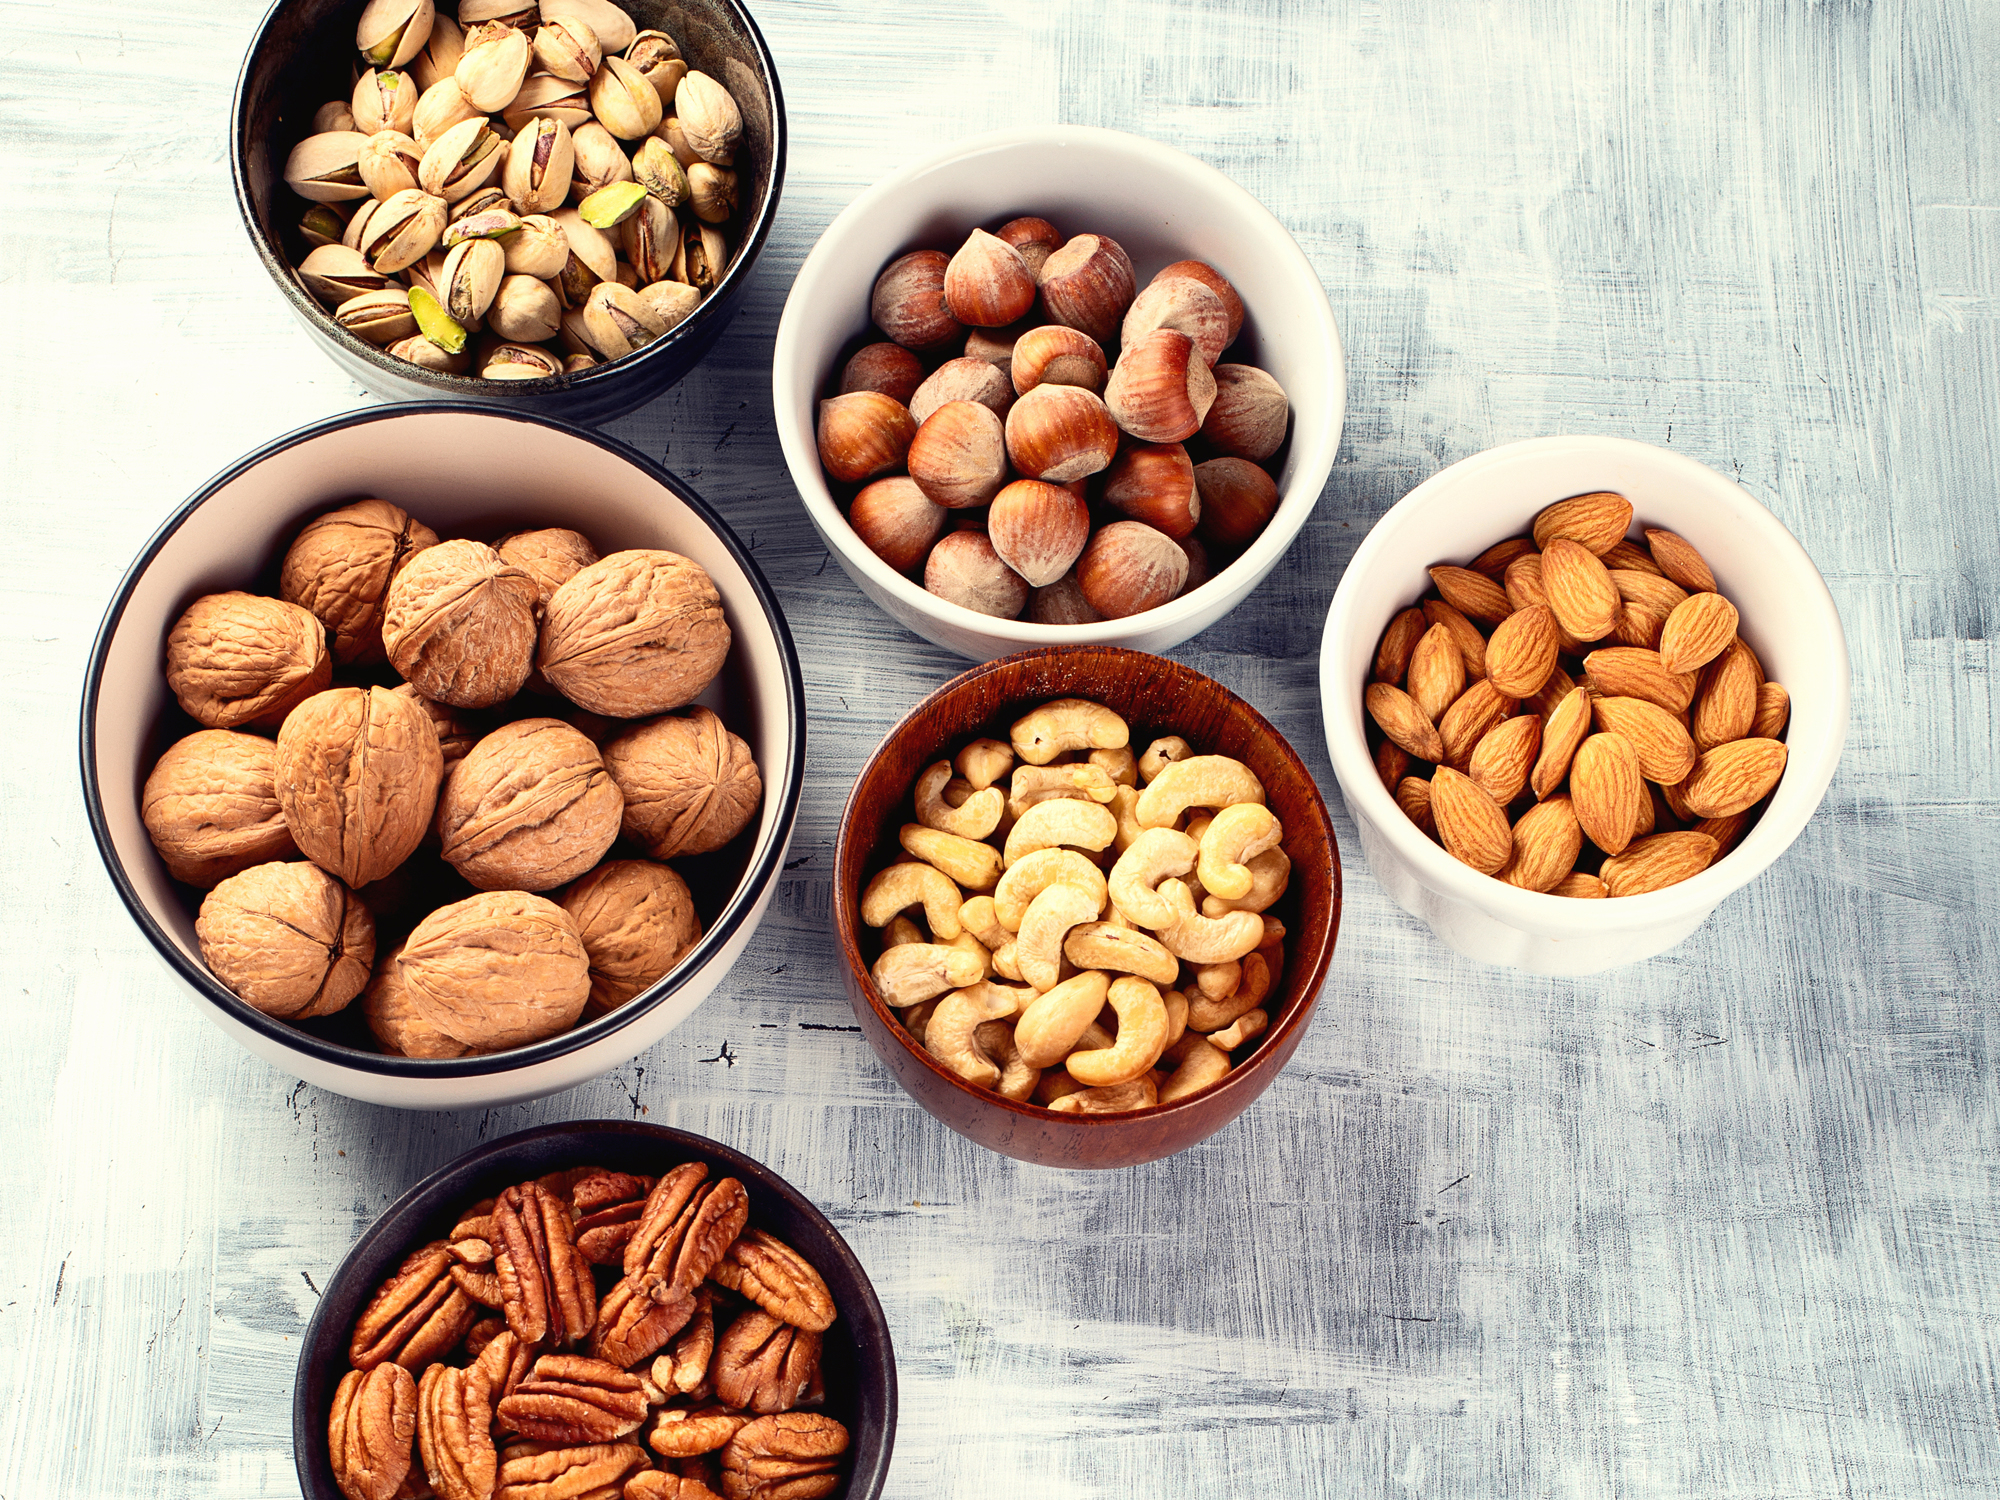 The best nut to crackdown on chronic disease risk?